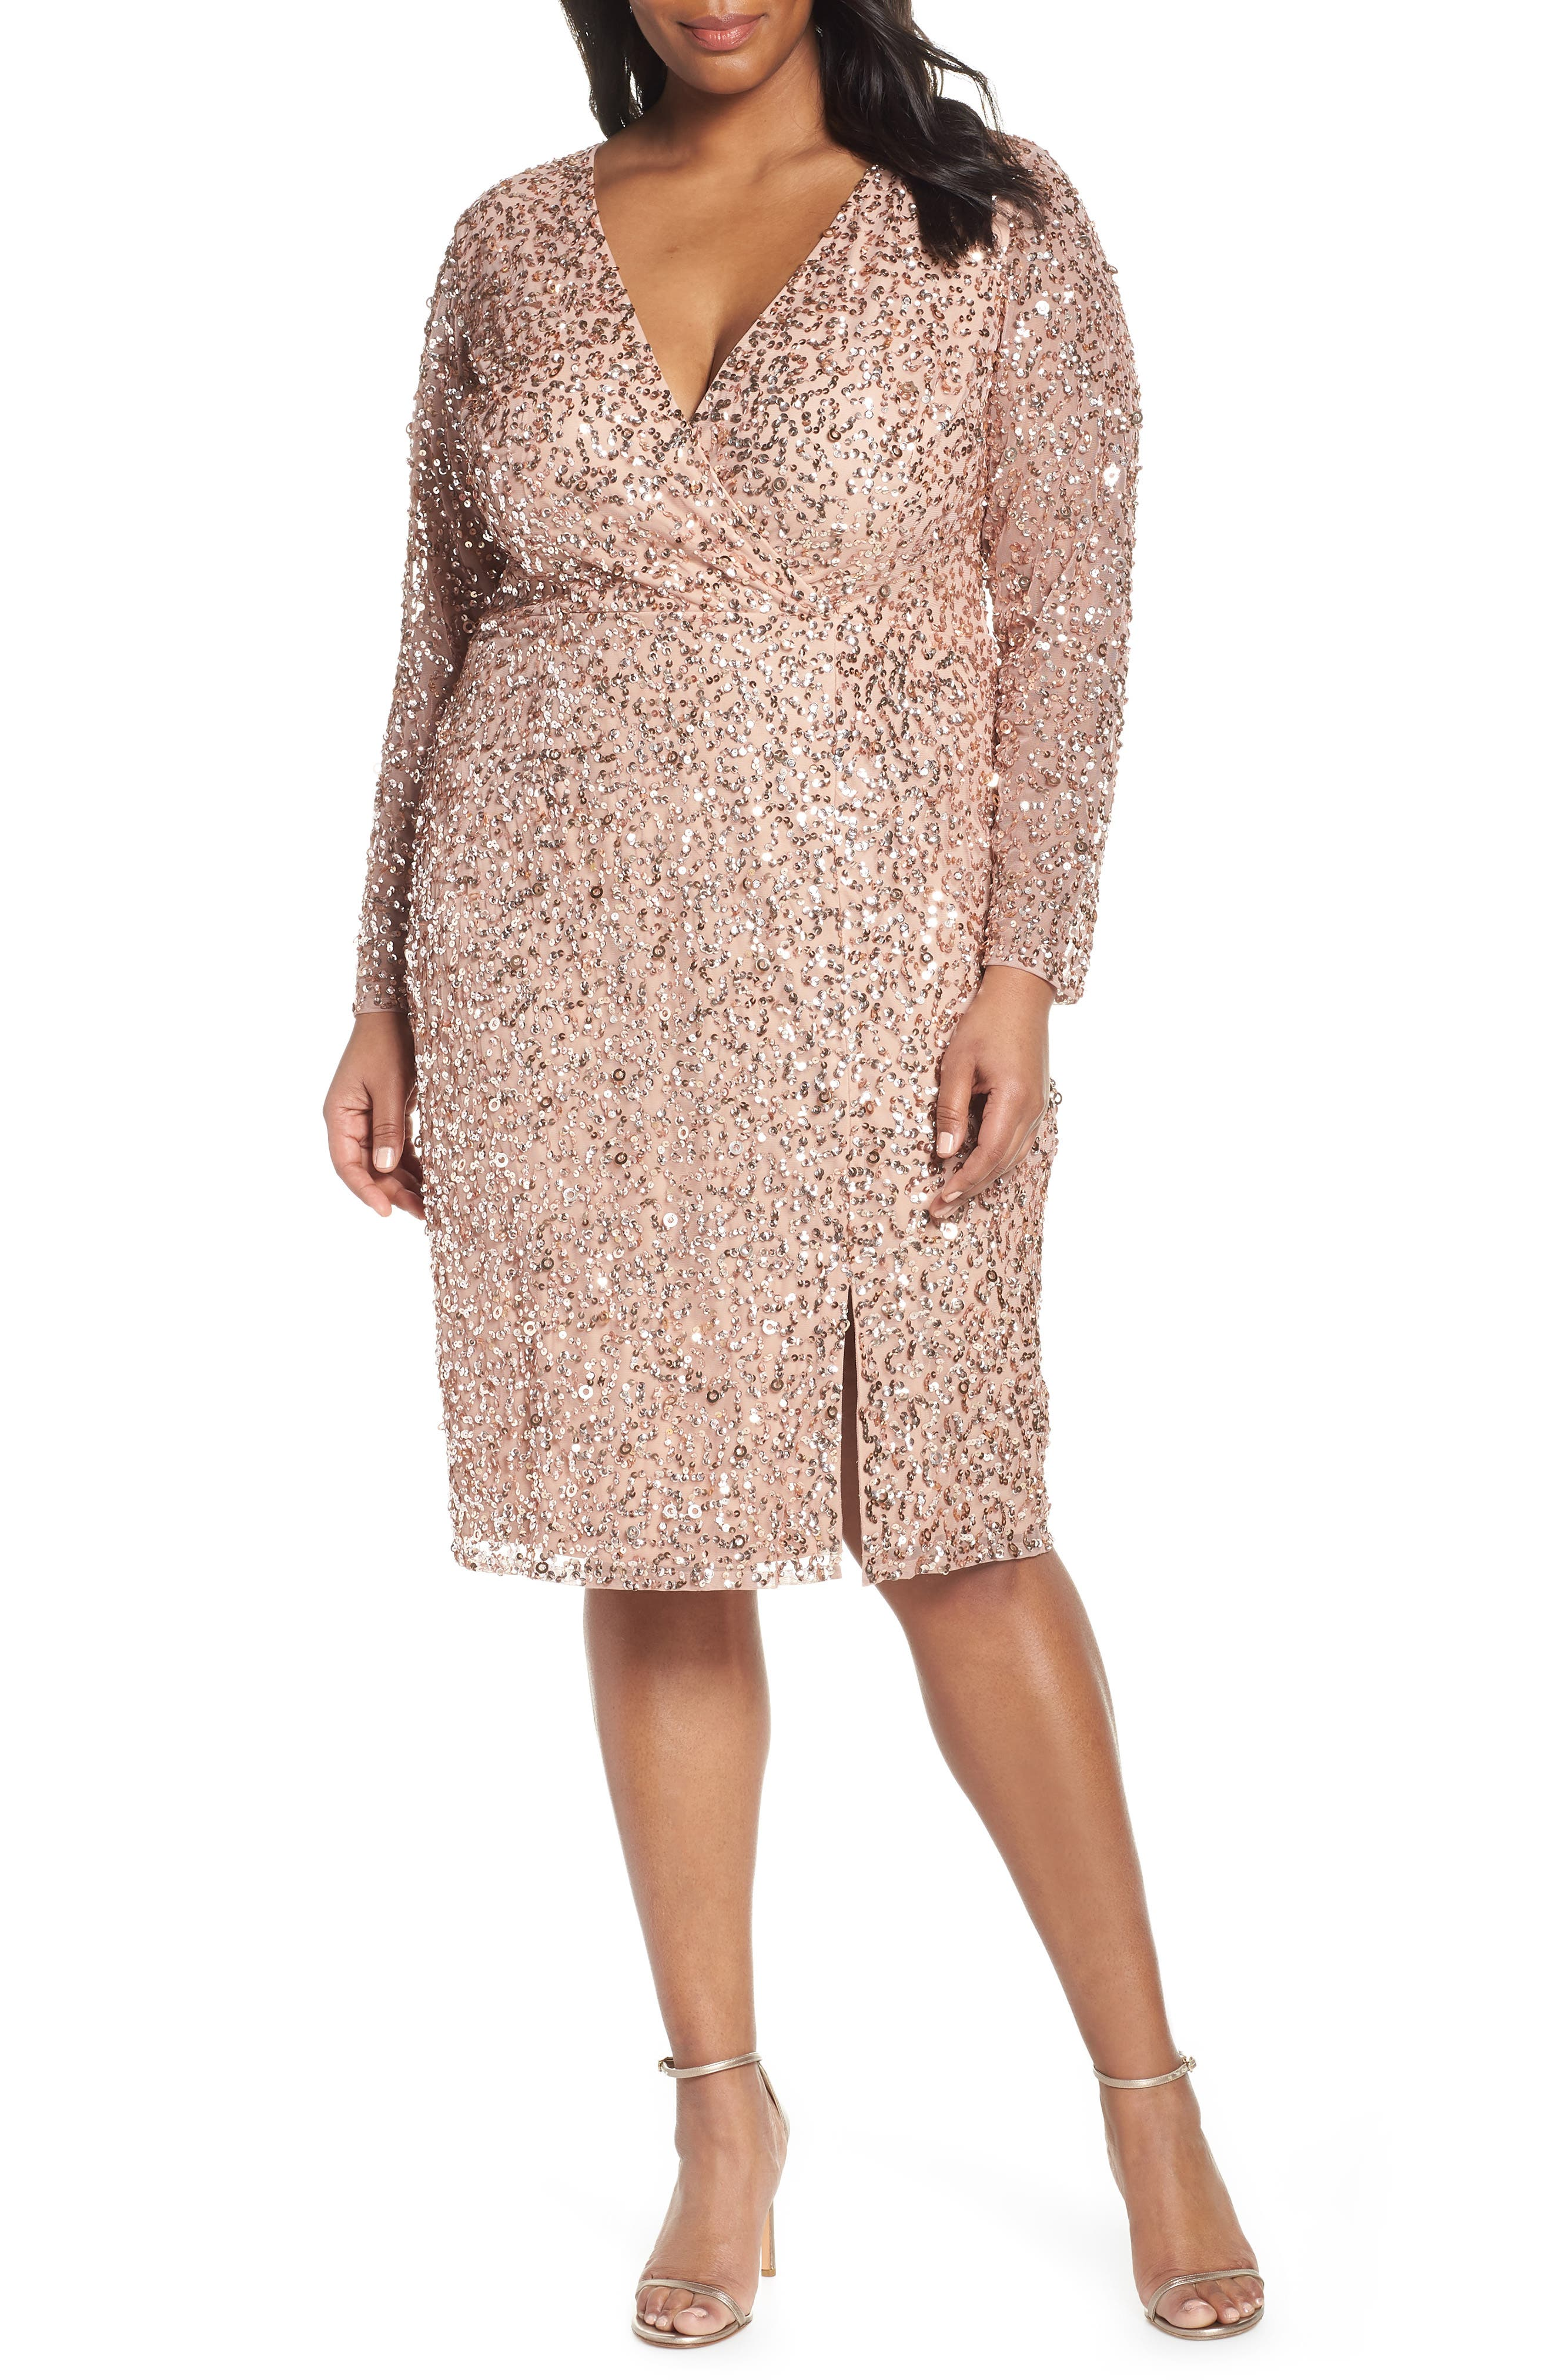 ADRIANNA PAPELL,                             Beaded Mesh Cocktail Dress,                             Main thumbnail 1, color,                             ROSE GOLD